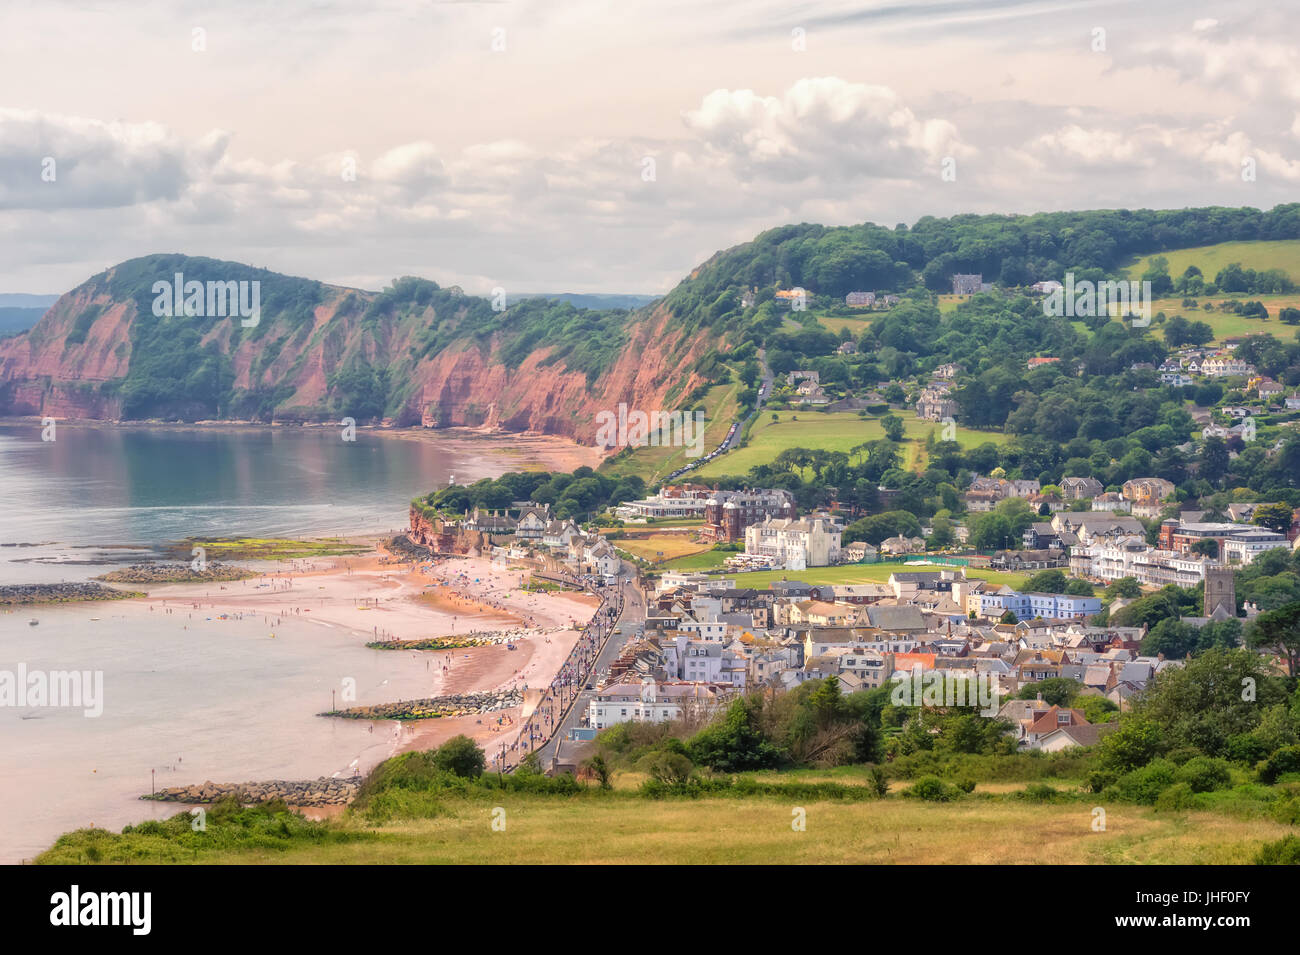 Beach in Sidmouth, Devon, South of England. - Stock Image